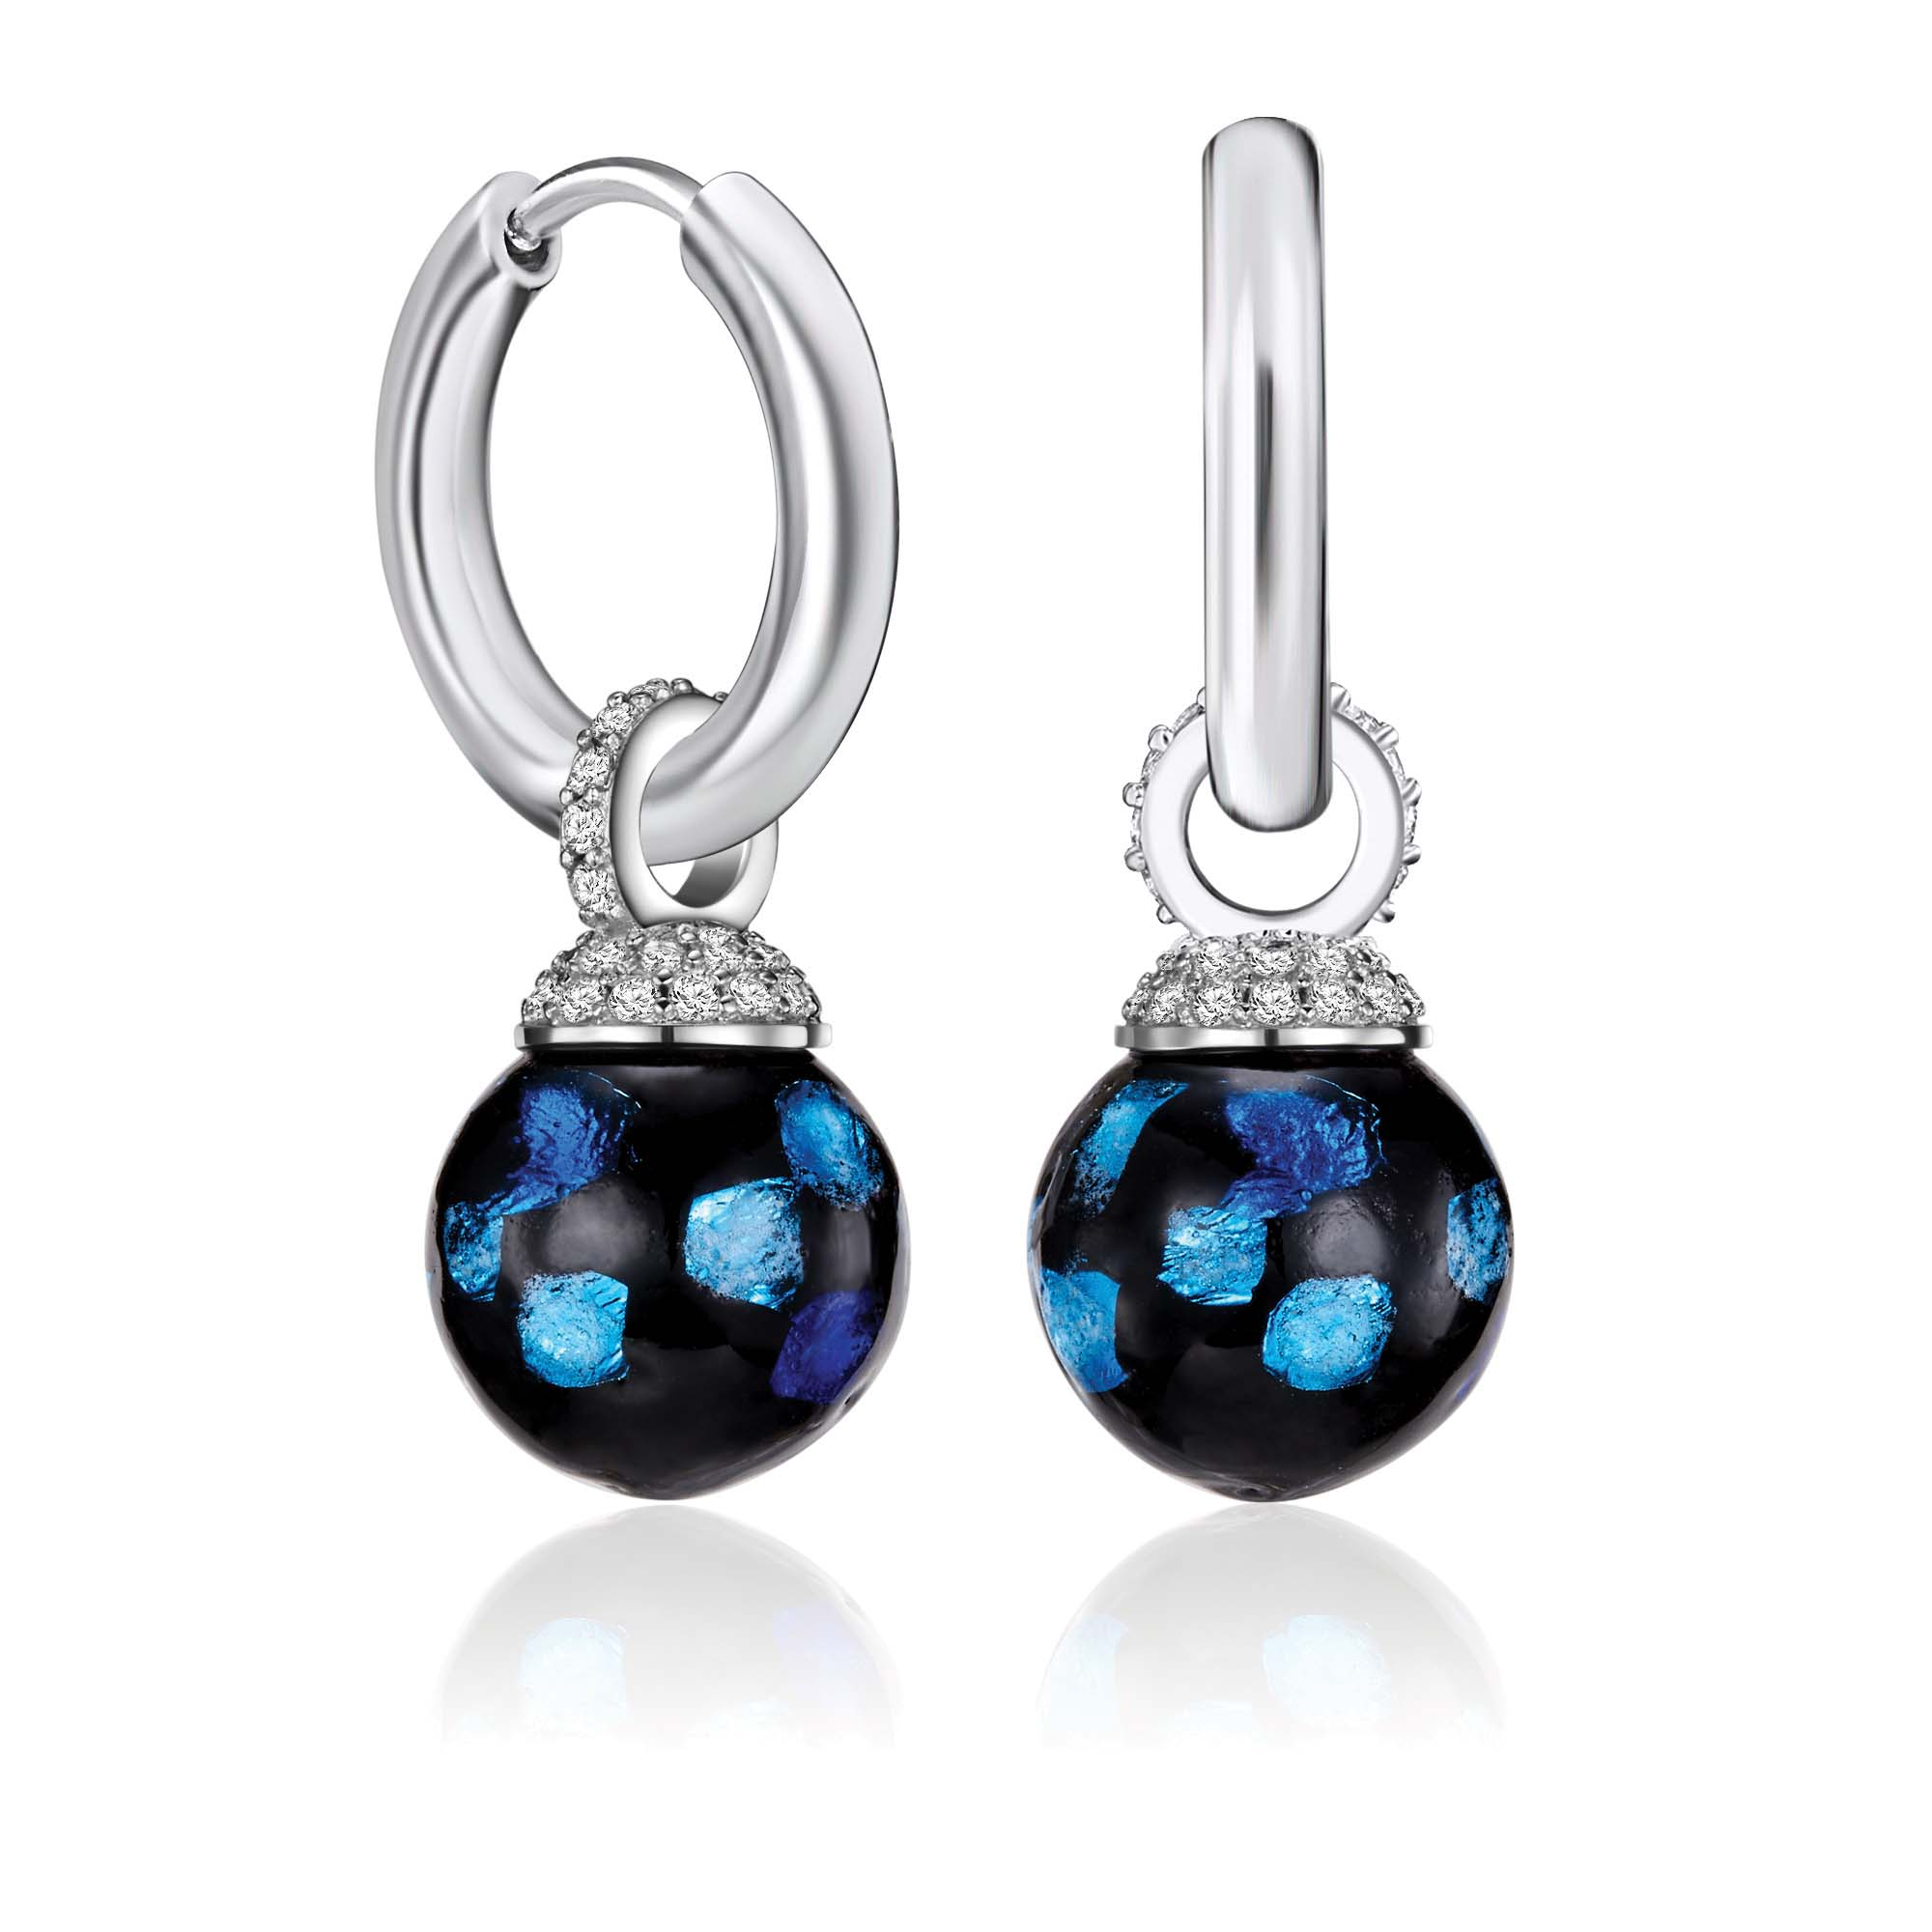 Kagi Blue Danube Drops Earcharms $99 on Silver Huggies $49 www.kagi.net